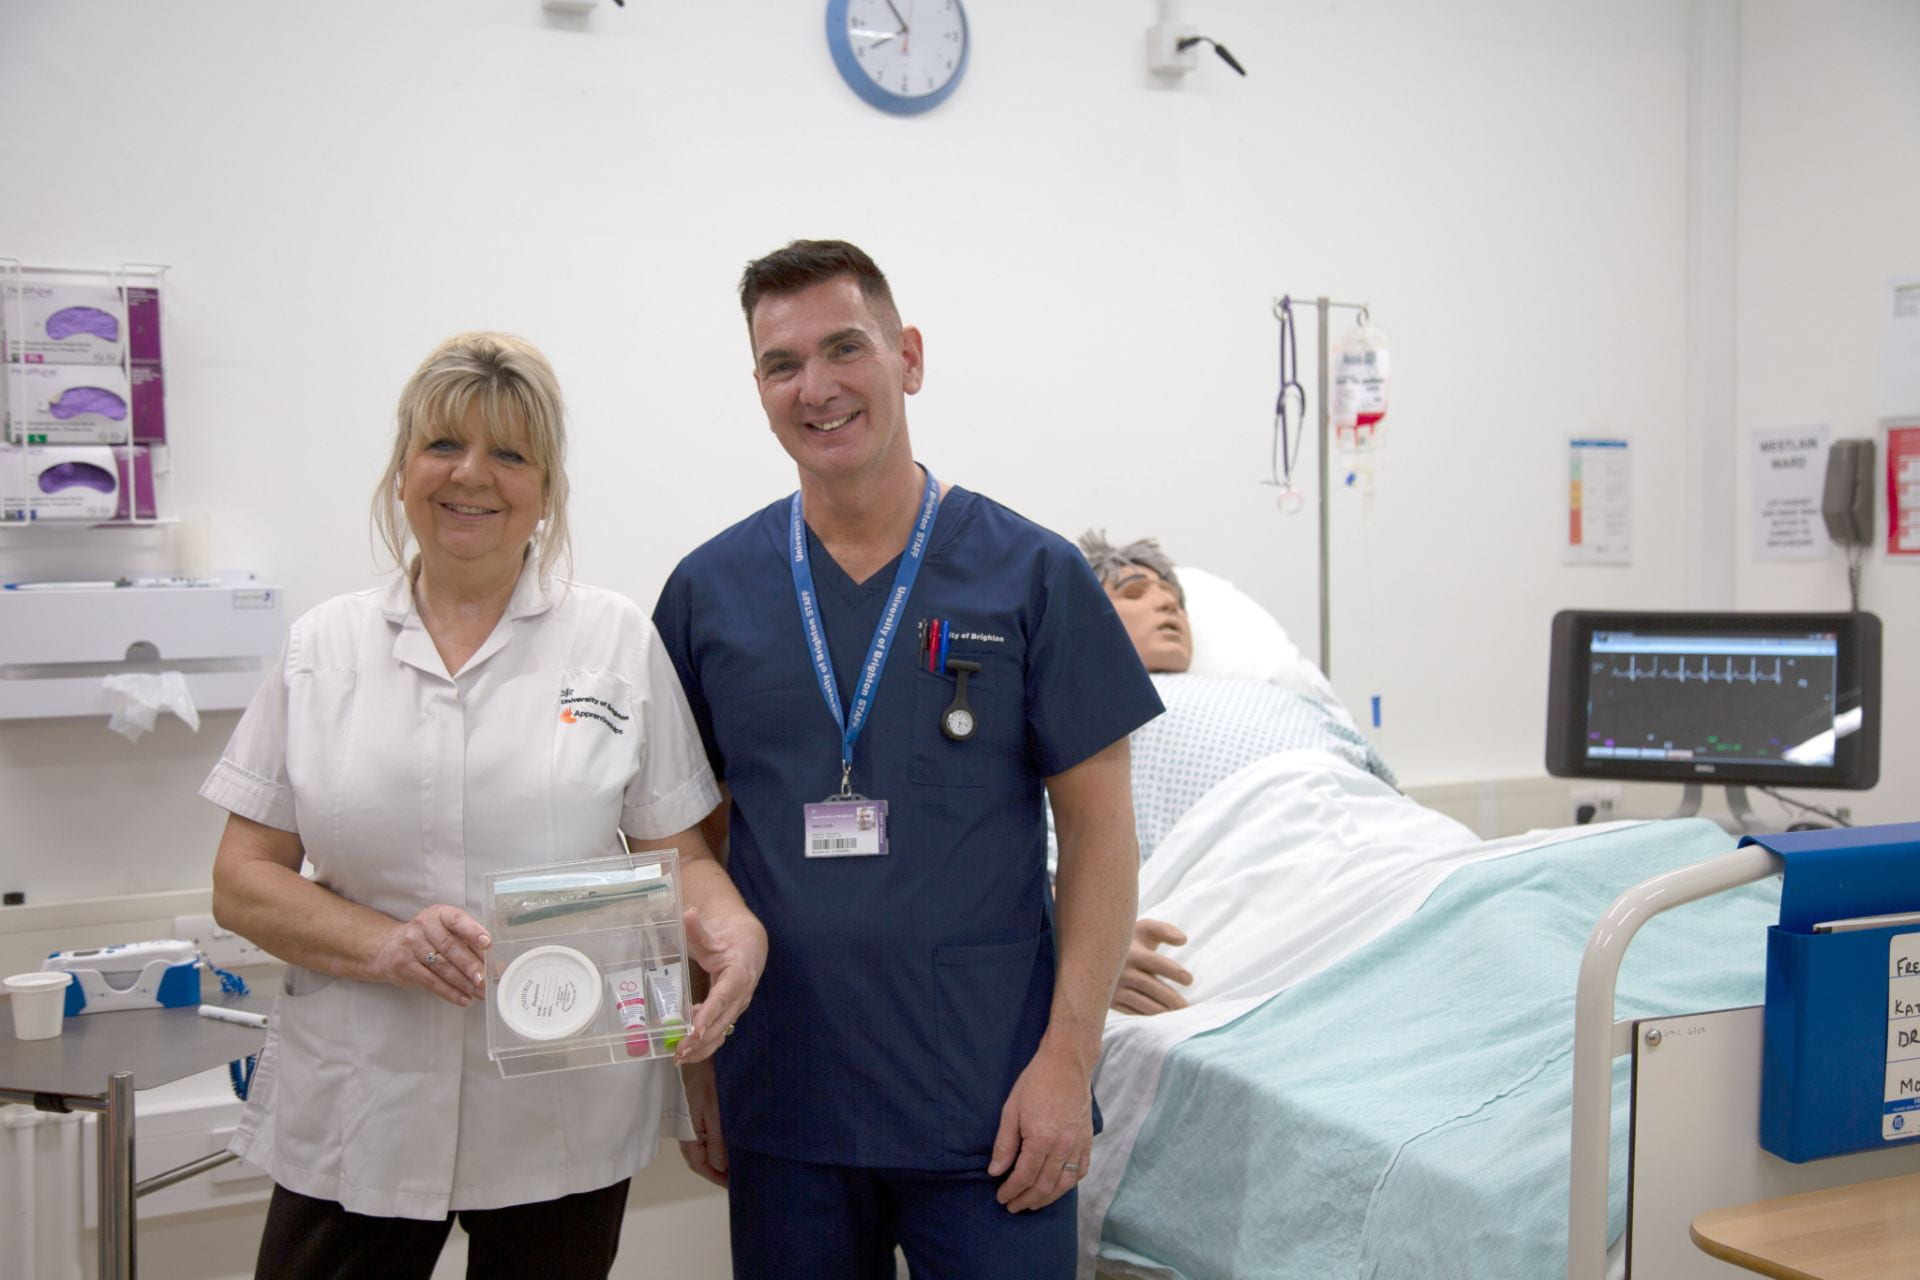 Nursing Associate apprentice Kathy Boult and course leader Mark Lees